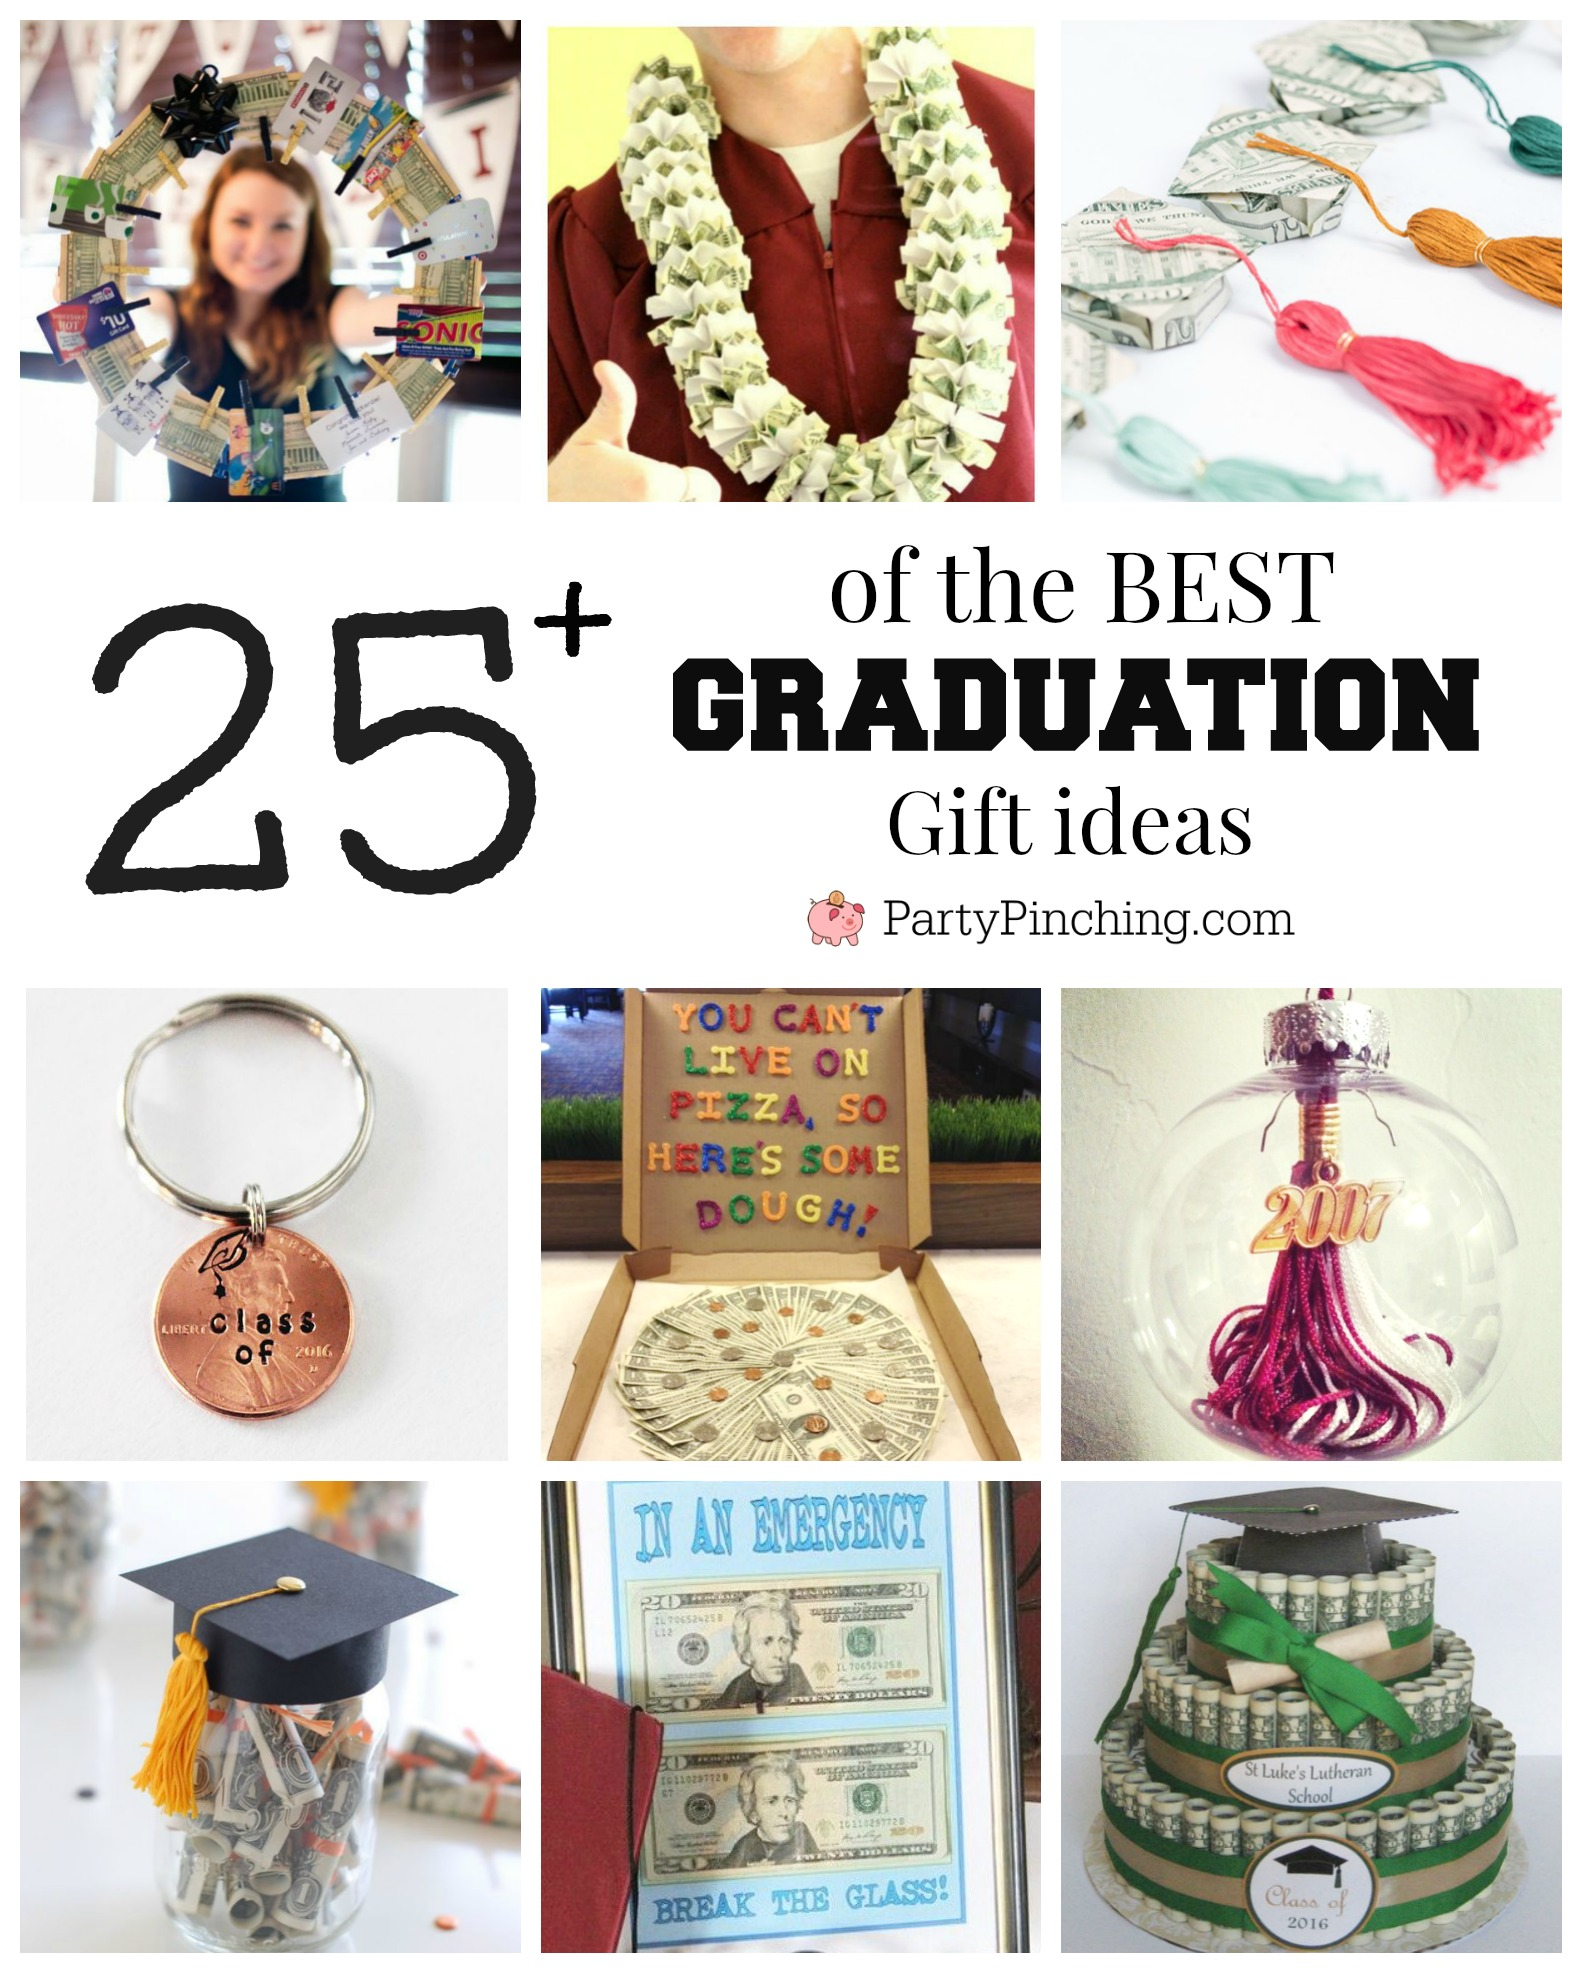 Best Graduation gift ideas, fun and easy DIY graduation grad gifts, thoughtful graduation gift, money origami graduation gifts, money gift cards graduation gift ideas